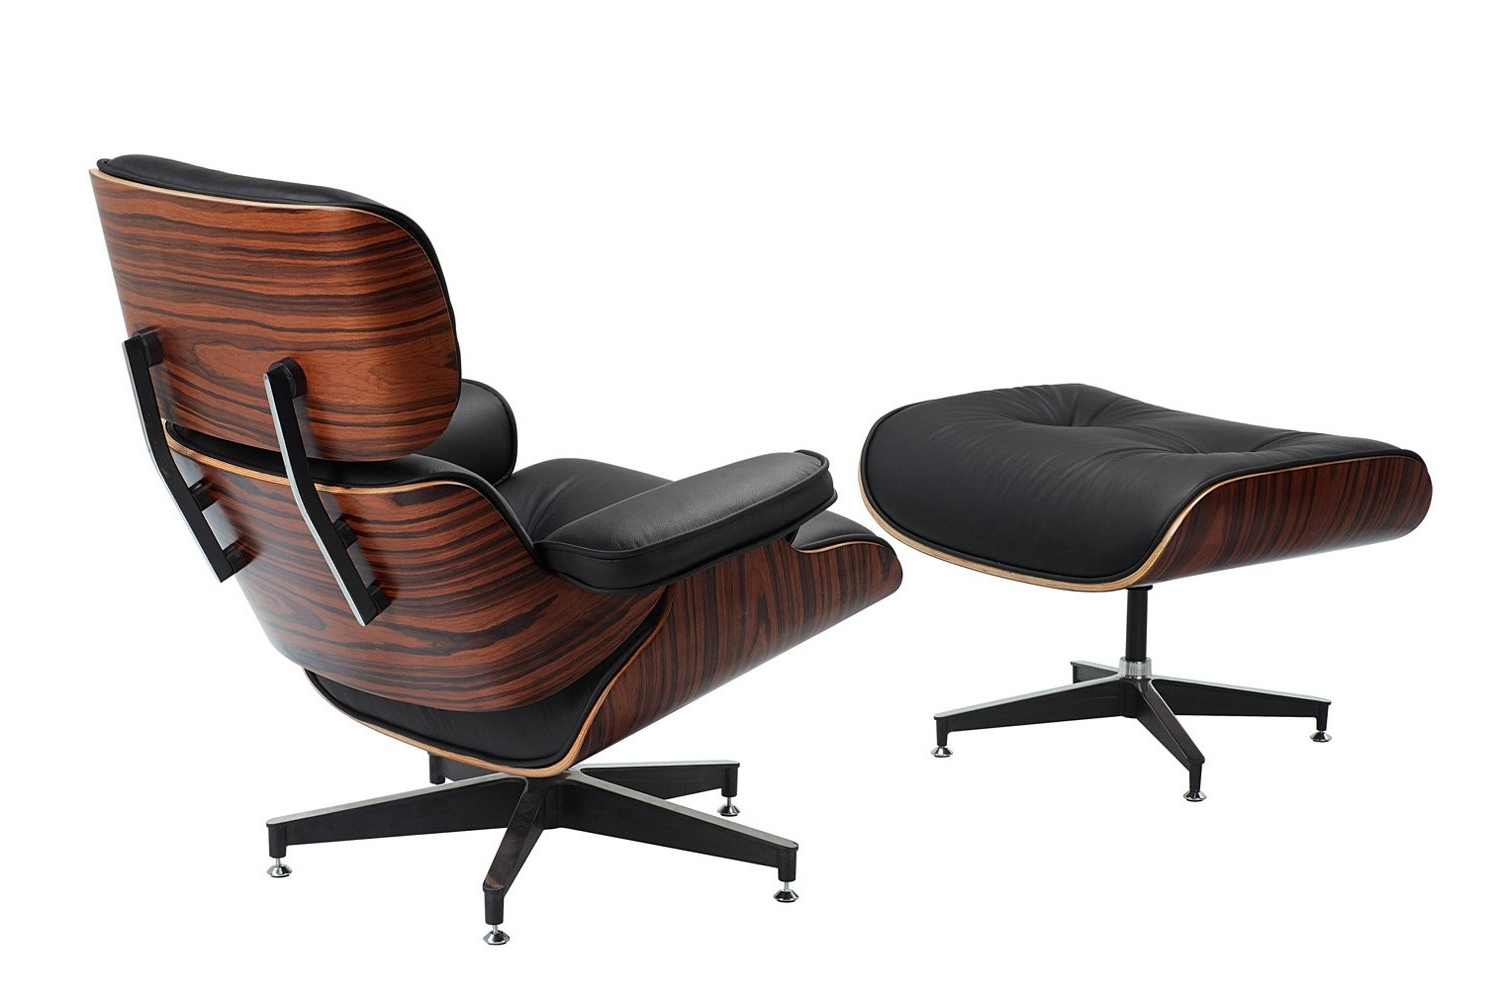 Desk Chairs Without Wheels Within Well Known Executive Office Chairs Without Wheels (Gallery 10 of 20)